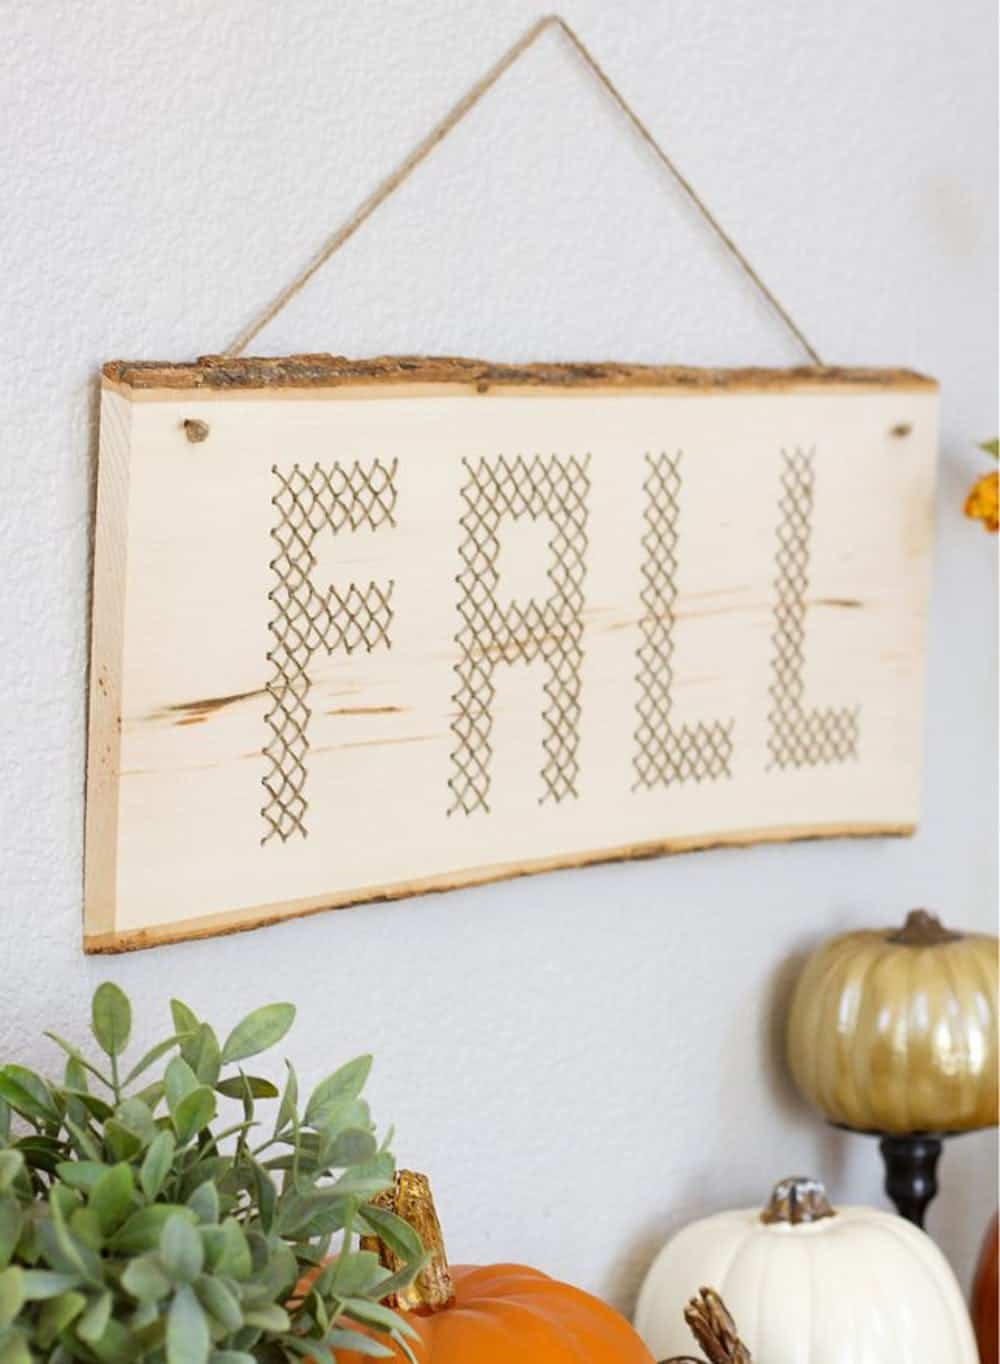 Wood plank cross stitch diy